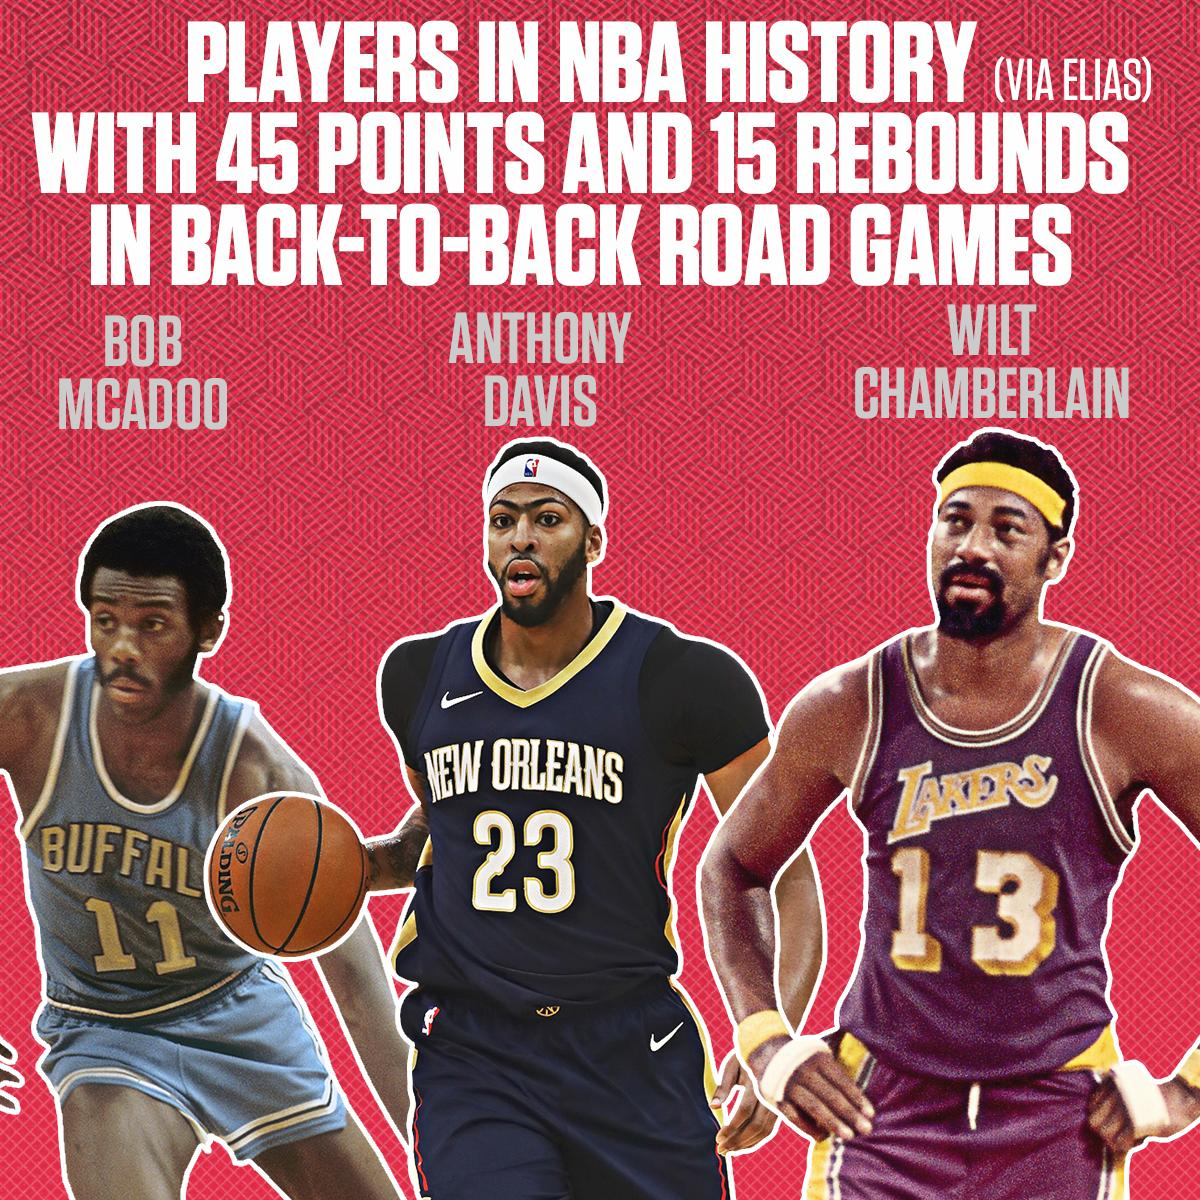 Anthony Davis became the third player in NBA history with 45 points and 15 rebounds in back-to-back road games. https://t.co/bJe2X5OvLJ